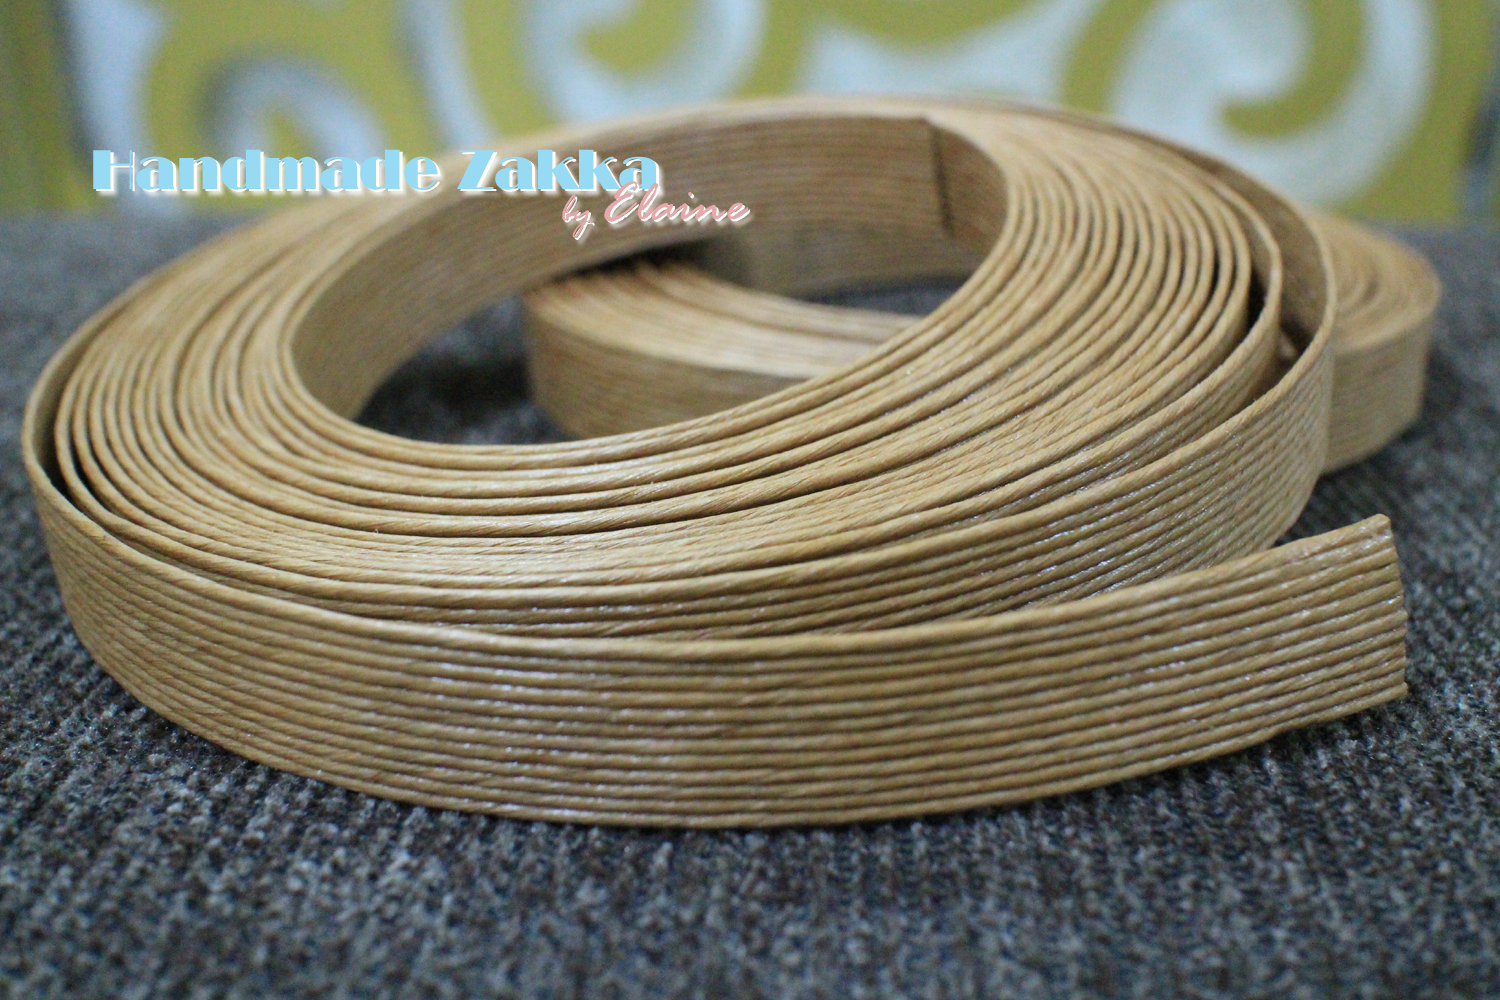 How To Weave A String Basket : Handmade zakka by elaine paper string basket with lining